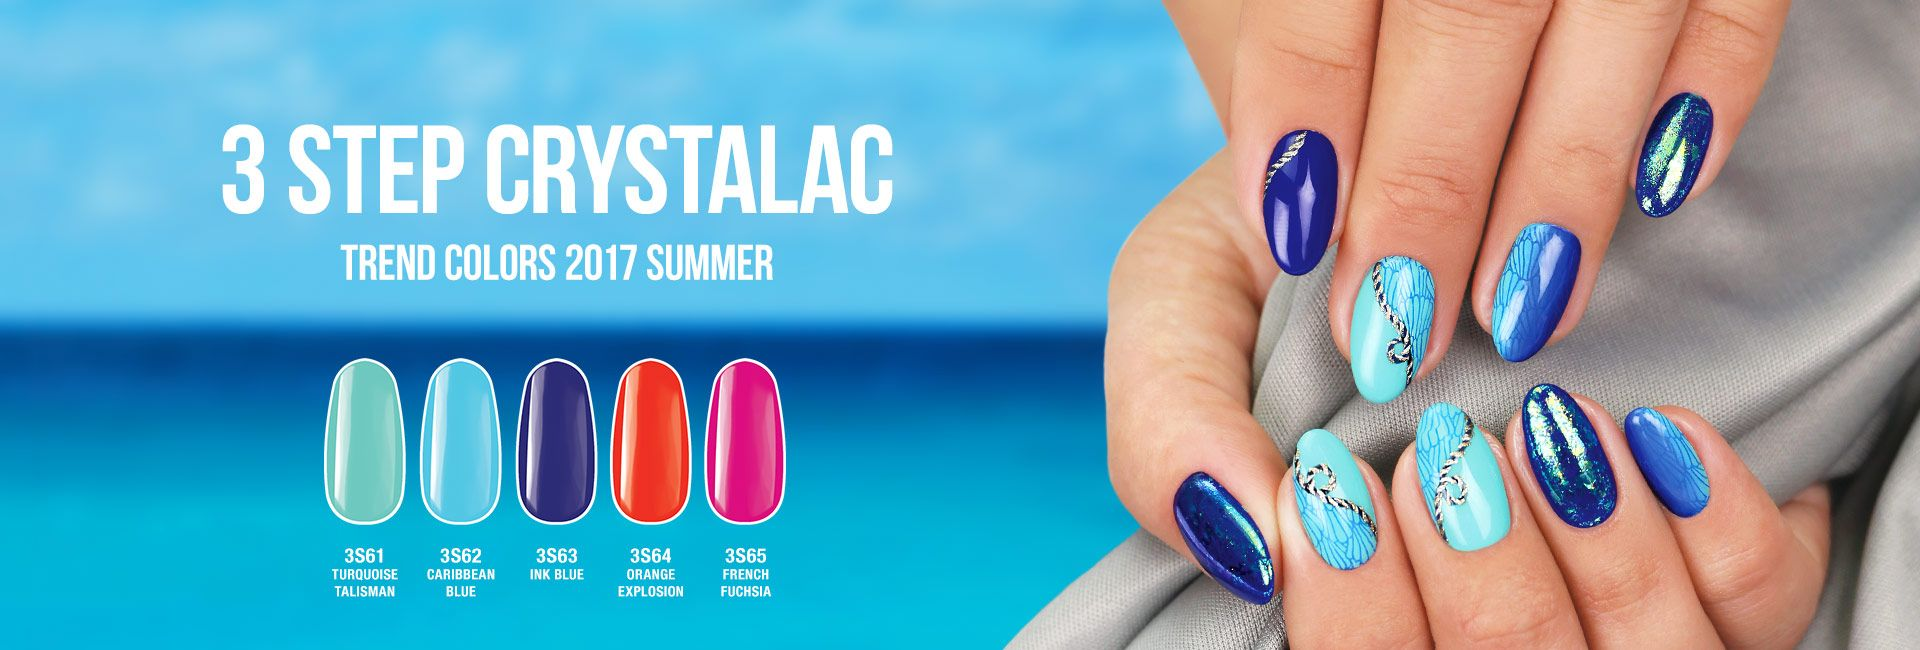 3 Step Crystalac Trend Colours 2017 Summer